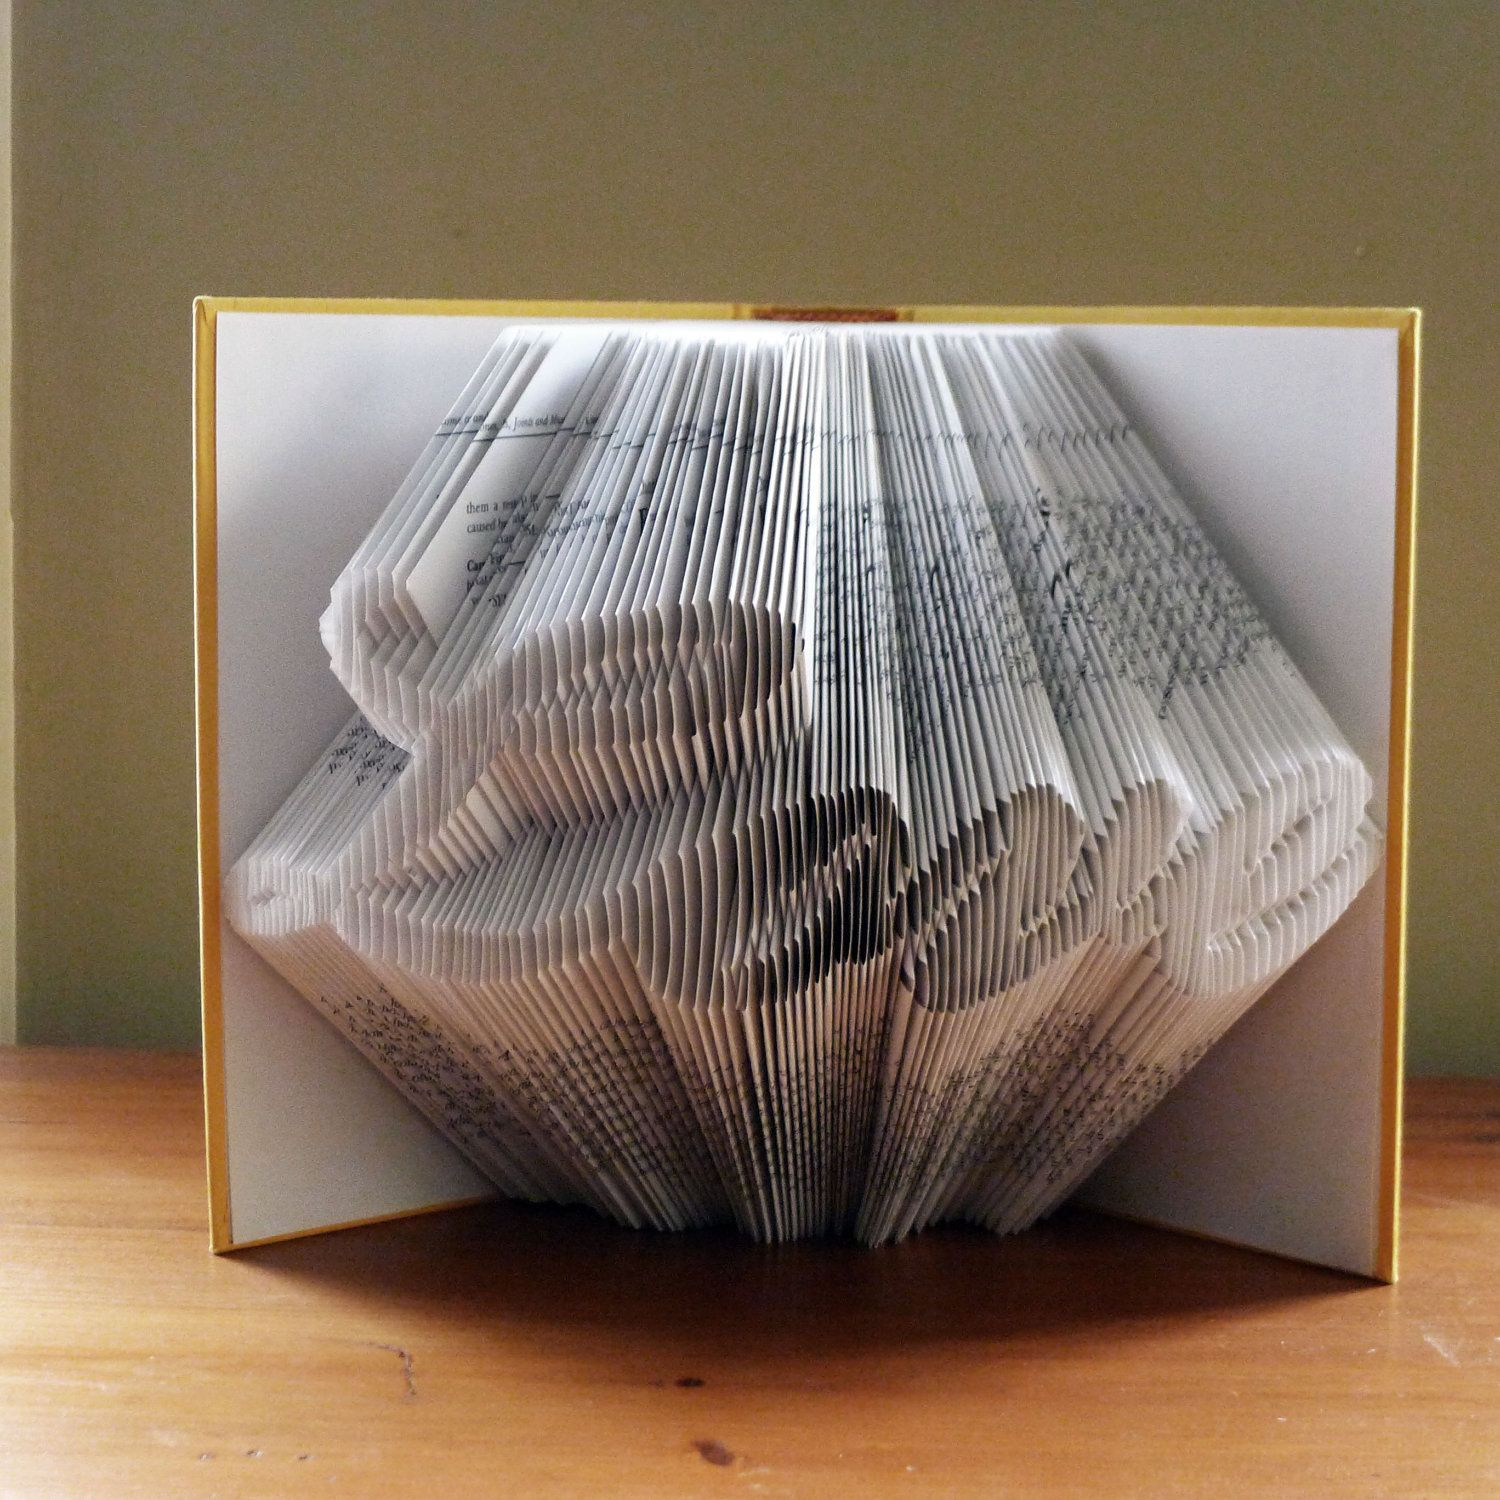 Folded book art love anniversary gifts boyfriend gift for folded book art love anniversary gifts boyfriend gift for book lovers negle Image collections